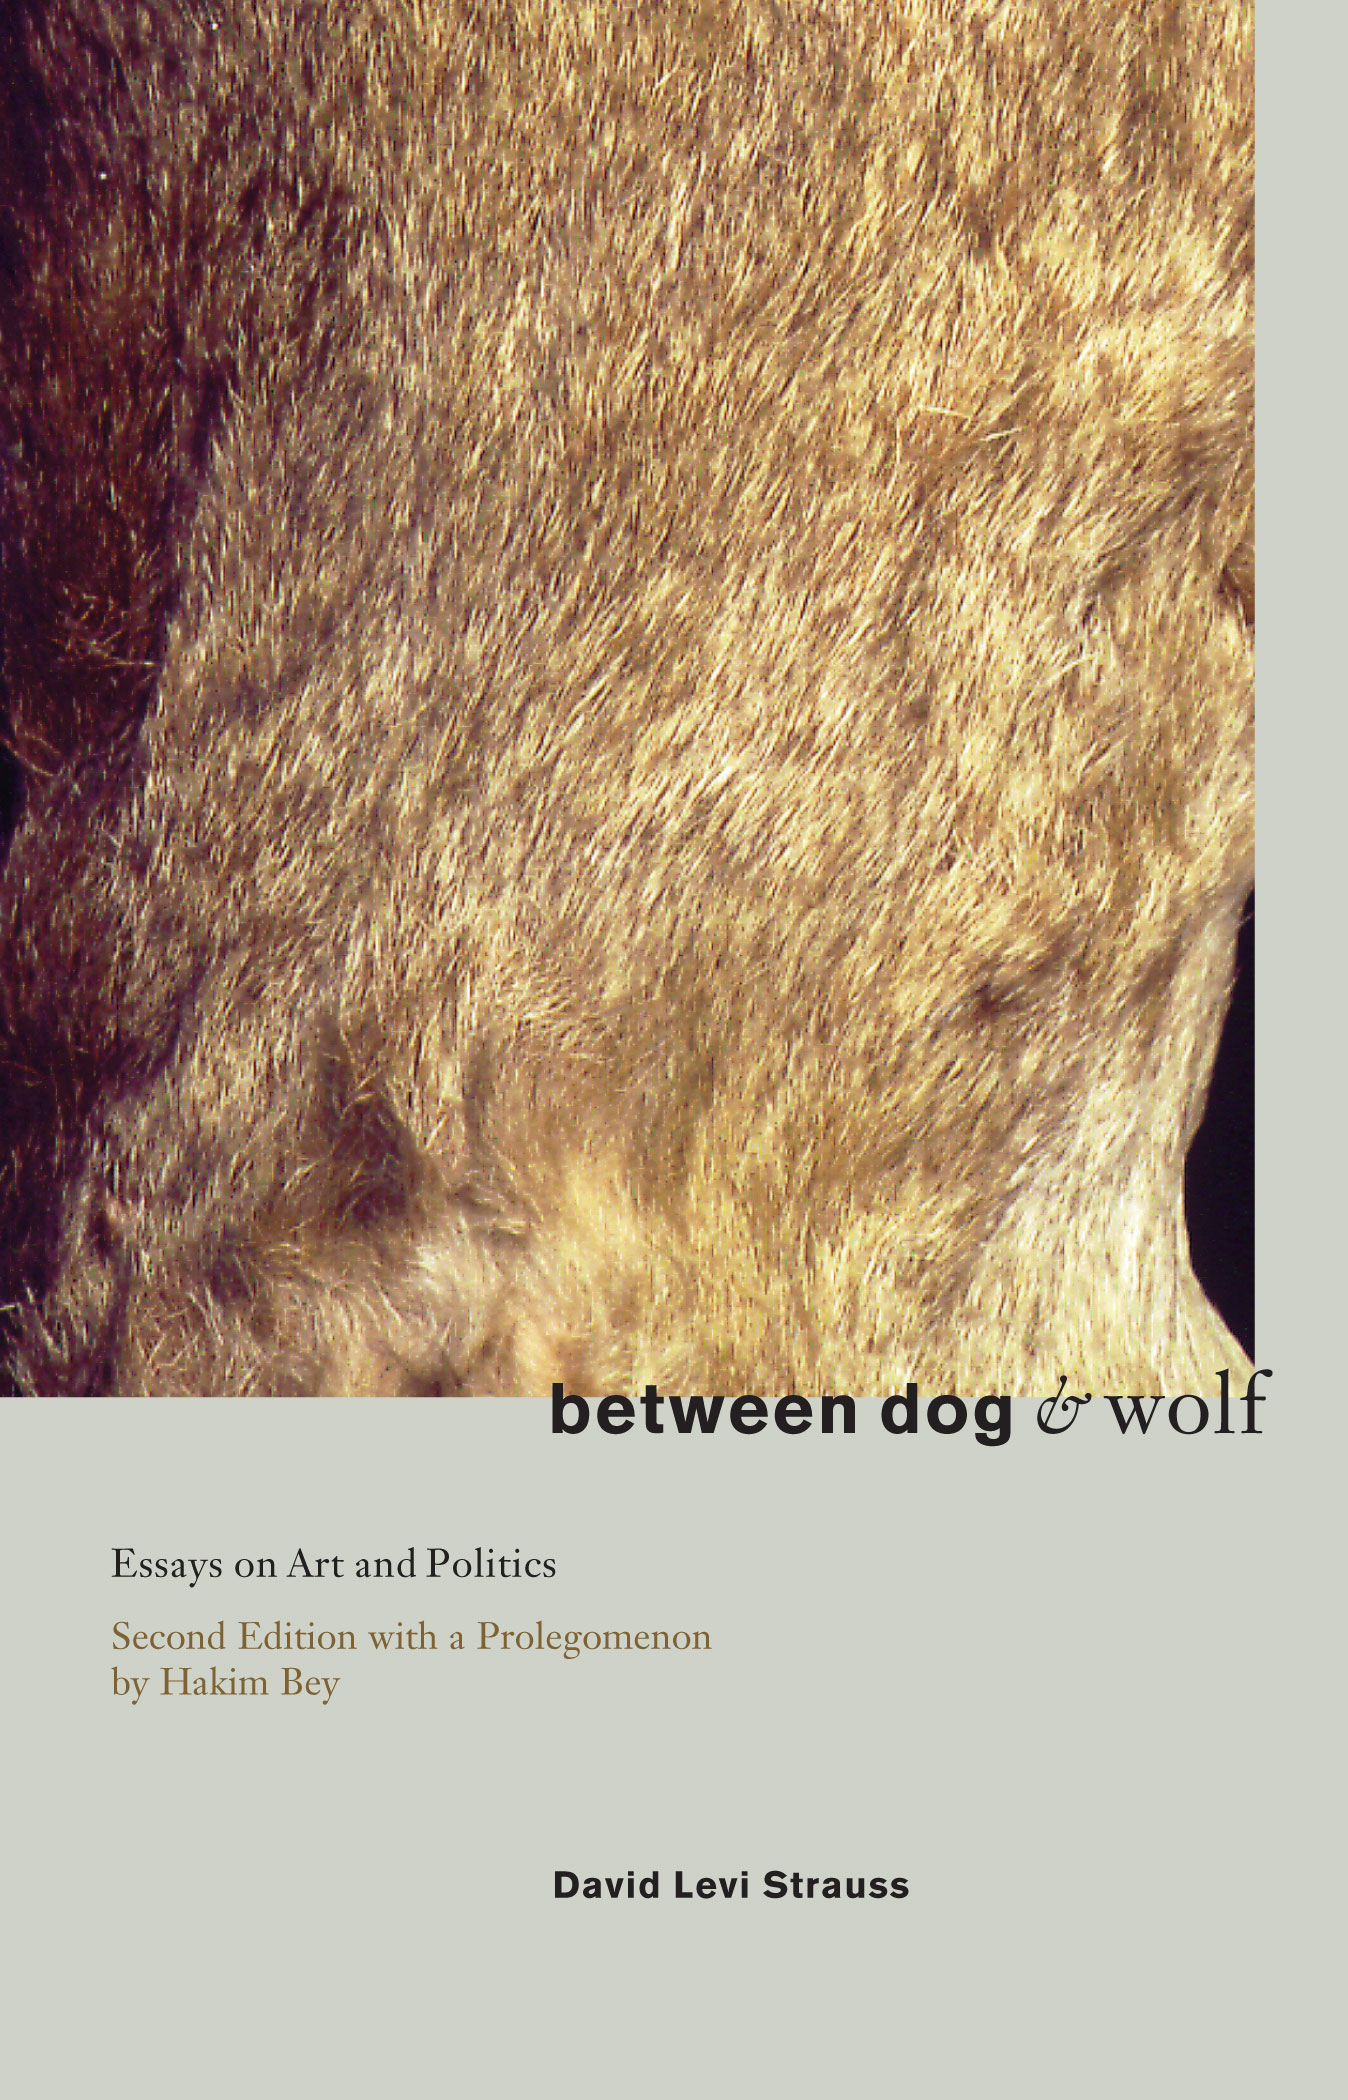 Between Dog and Wolf [1570270937]